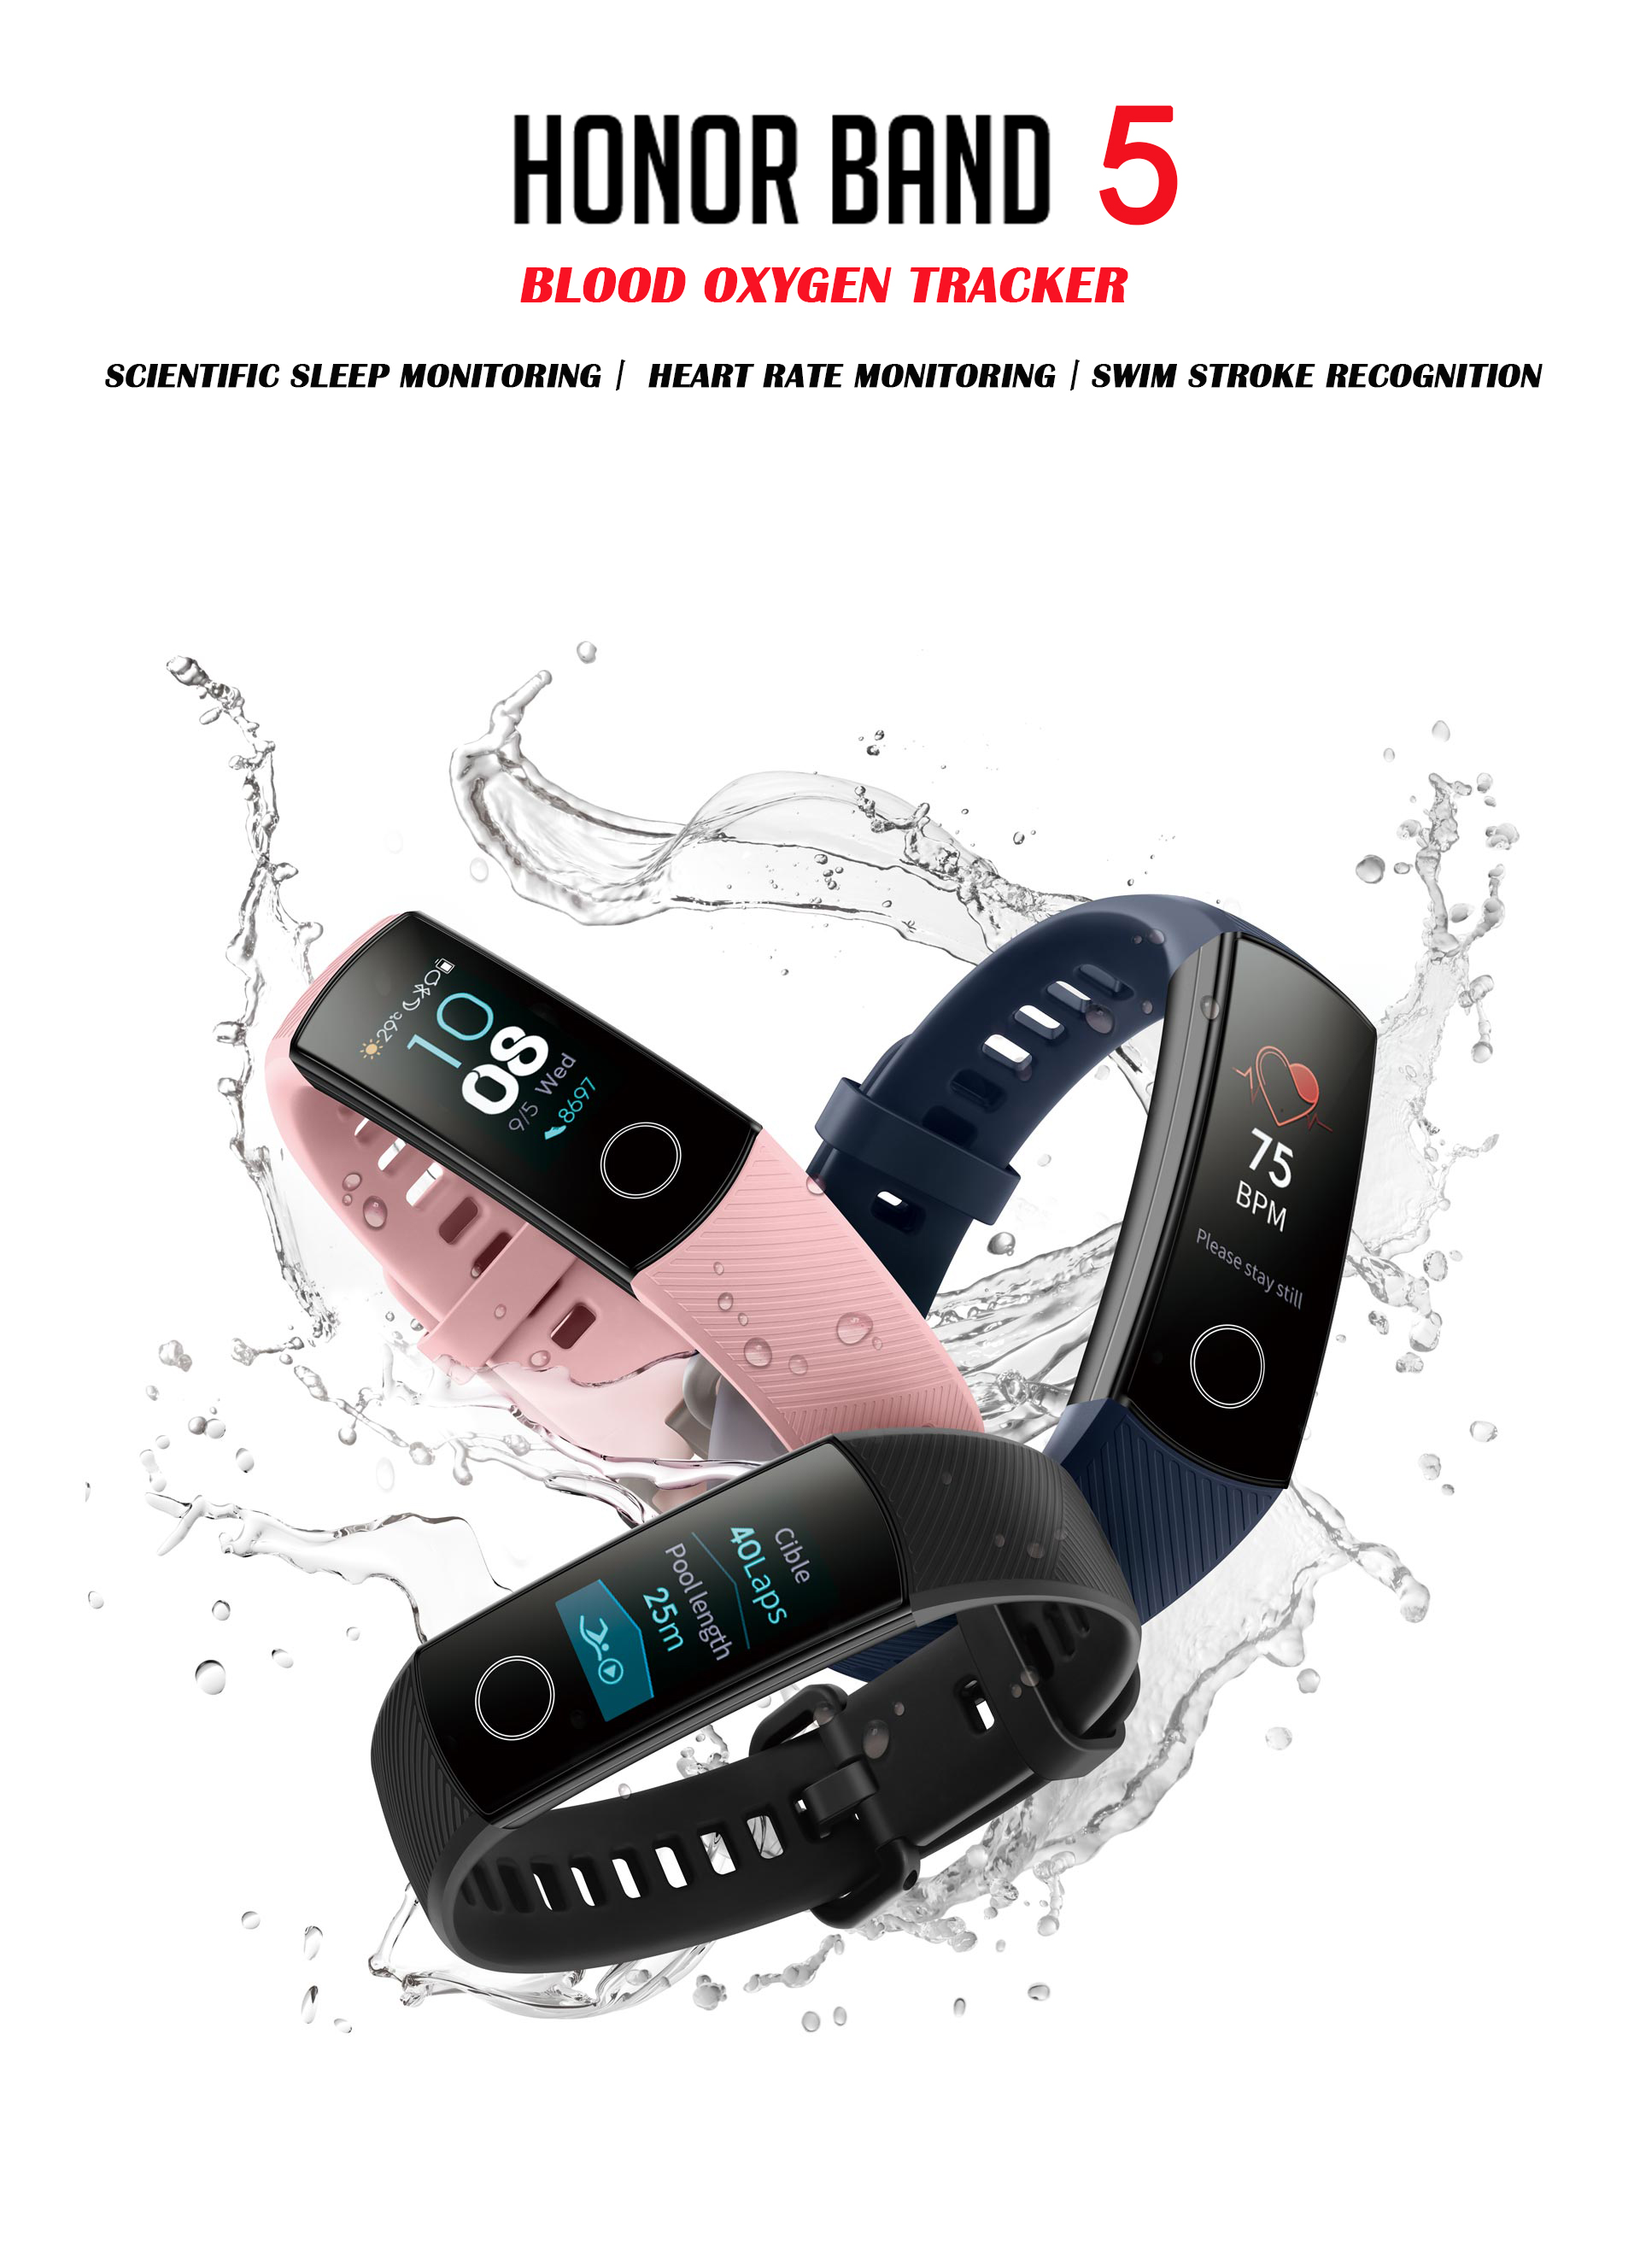 Huawei Honor blood oxygen monitoring smart watch or Smart Band including heart rate regulation and fitness sleep swimming sport tracker 1